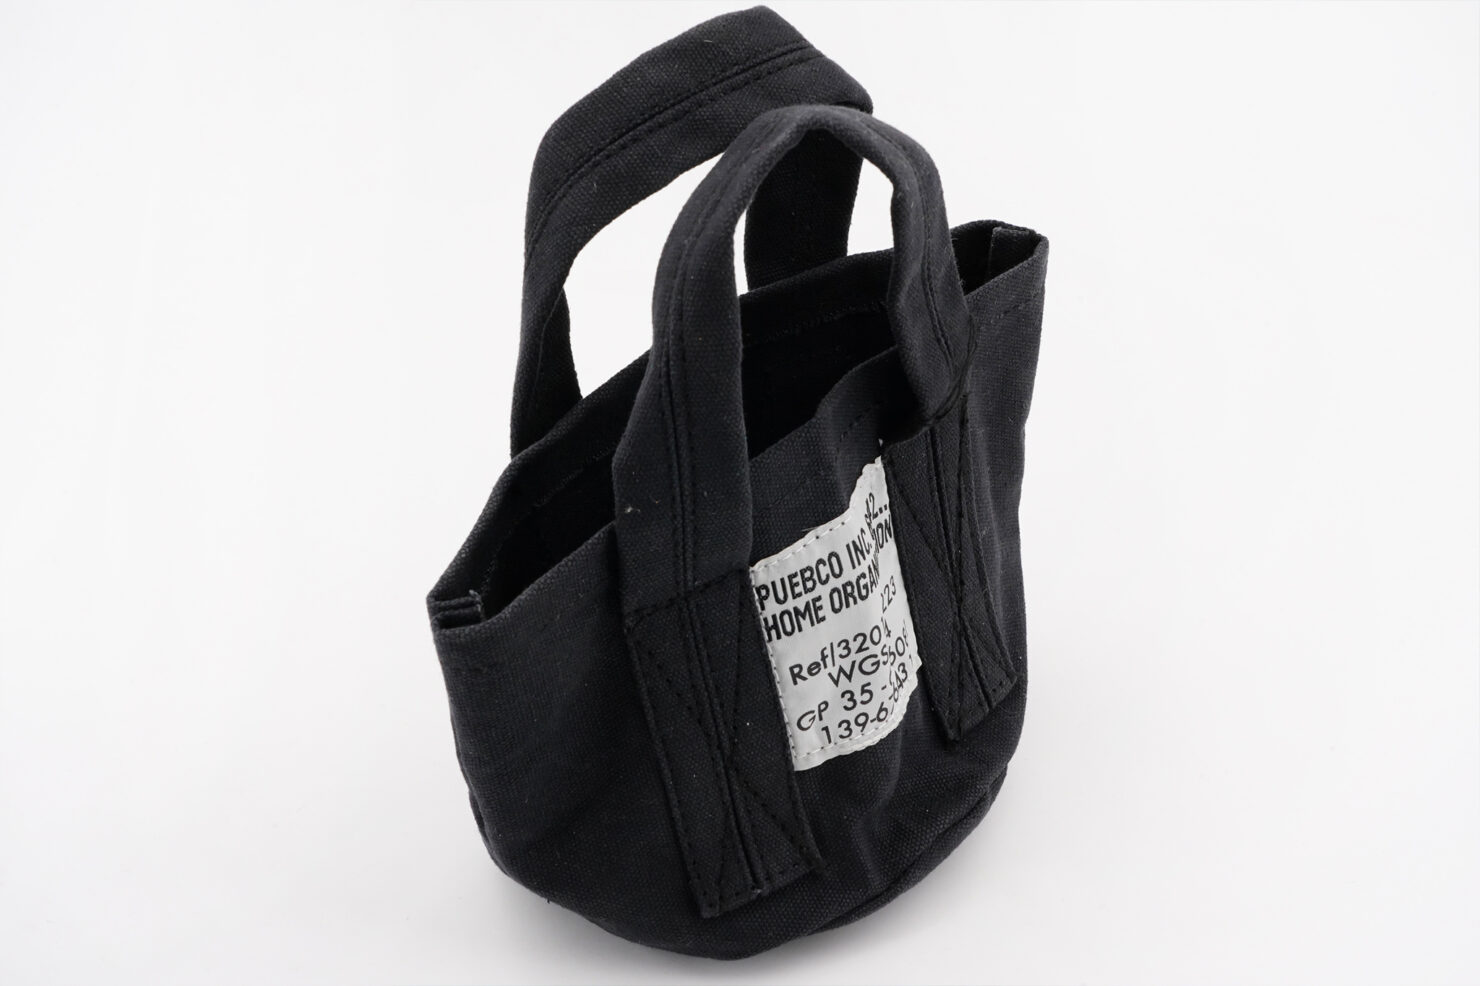 SMALL BAG BLACK - PUEBCO